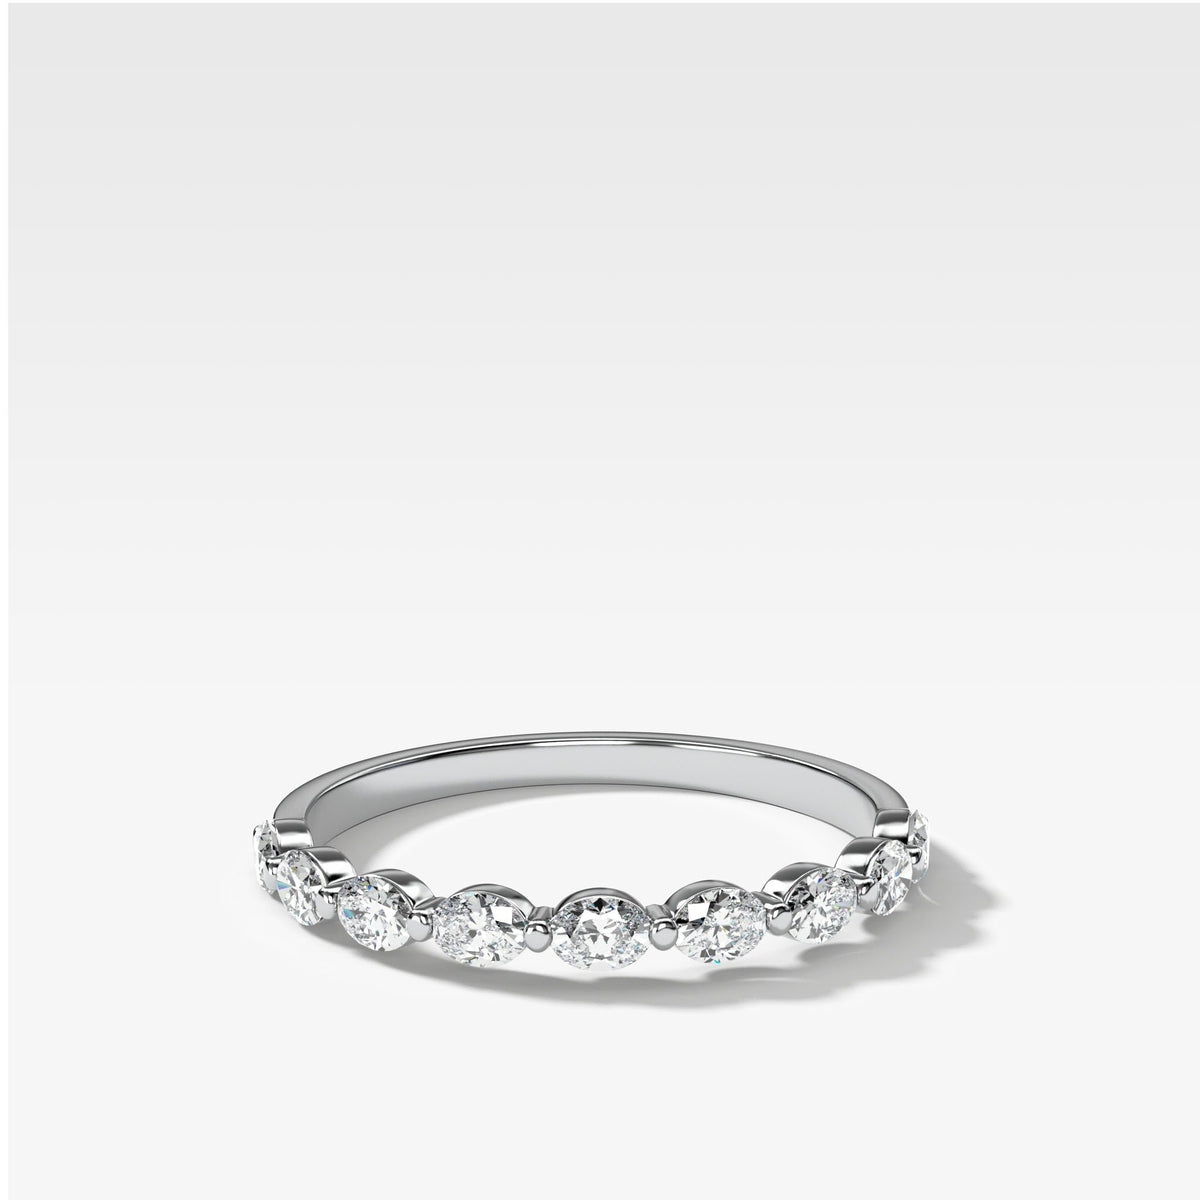 Oval Interstellar Wedding Band In White Gold By Good Stone